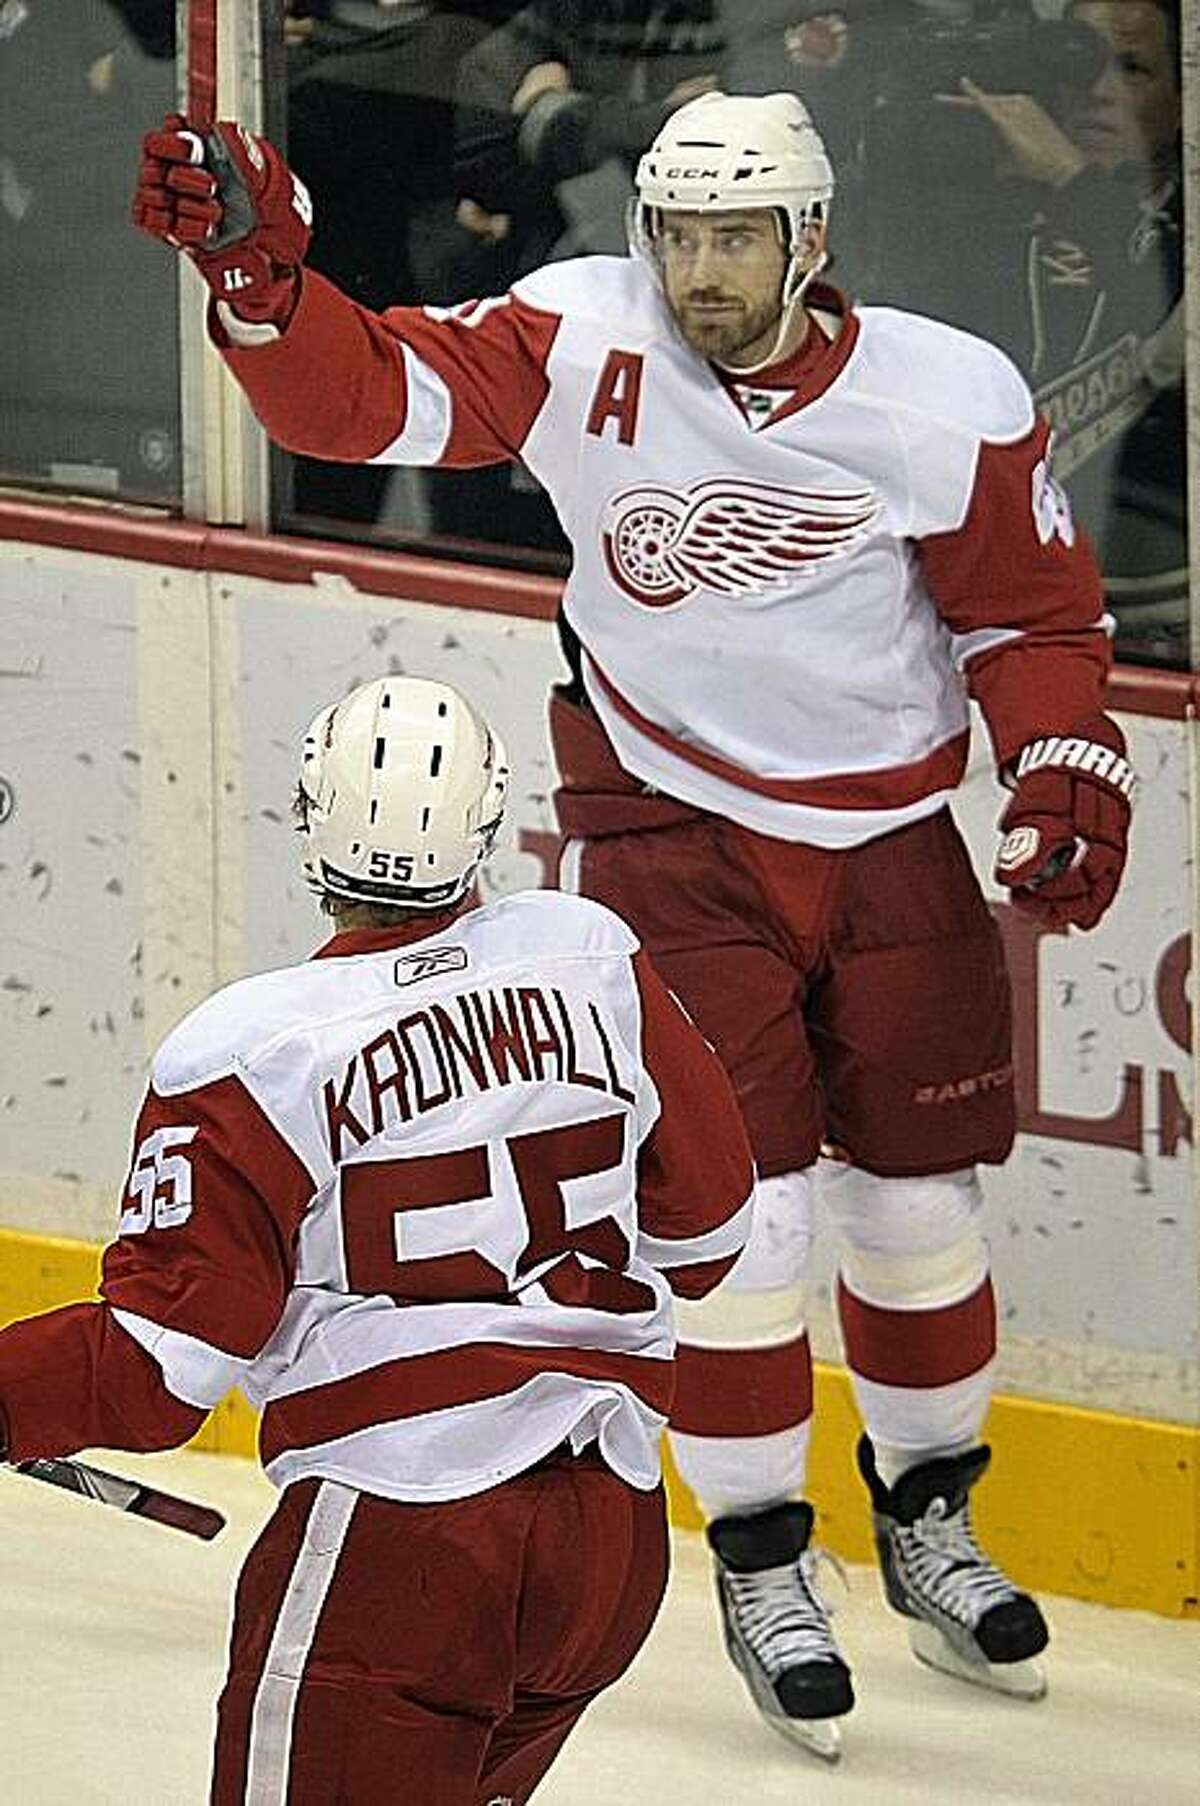 Detroit Red Wings' Henrik Zetterberg, right, of Sweden, celebrates his goal with teammate Niklas Kronwall (55), of Sweden, during the first period of an NHL hockey game against the Minnesota Wild on Sunday, Dec. 26, 2010, in St. Paul, Minn. Detroit won 4-1.